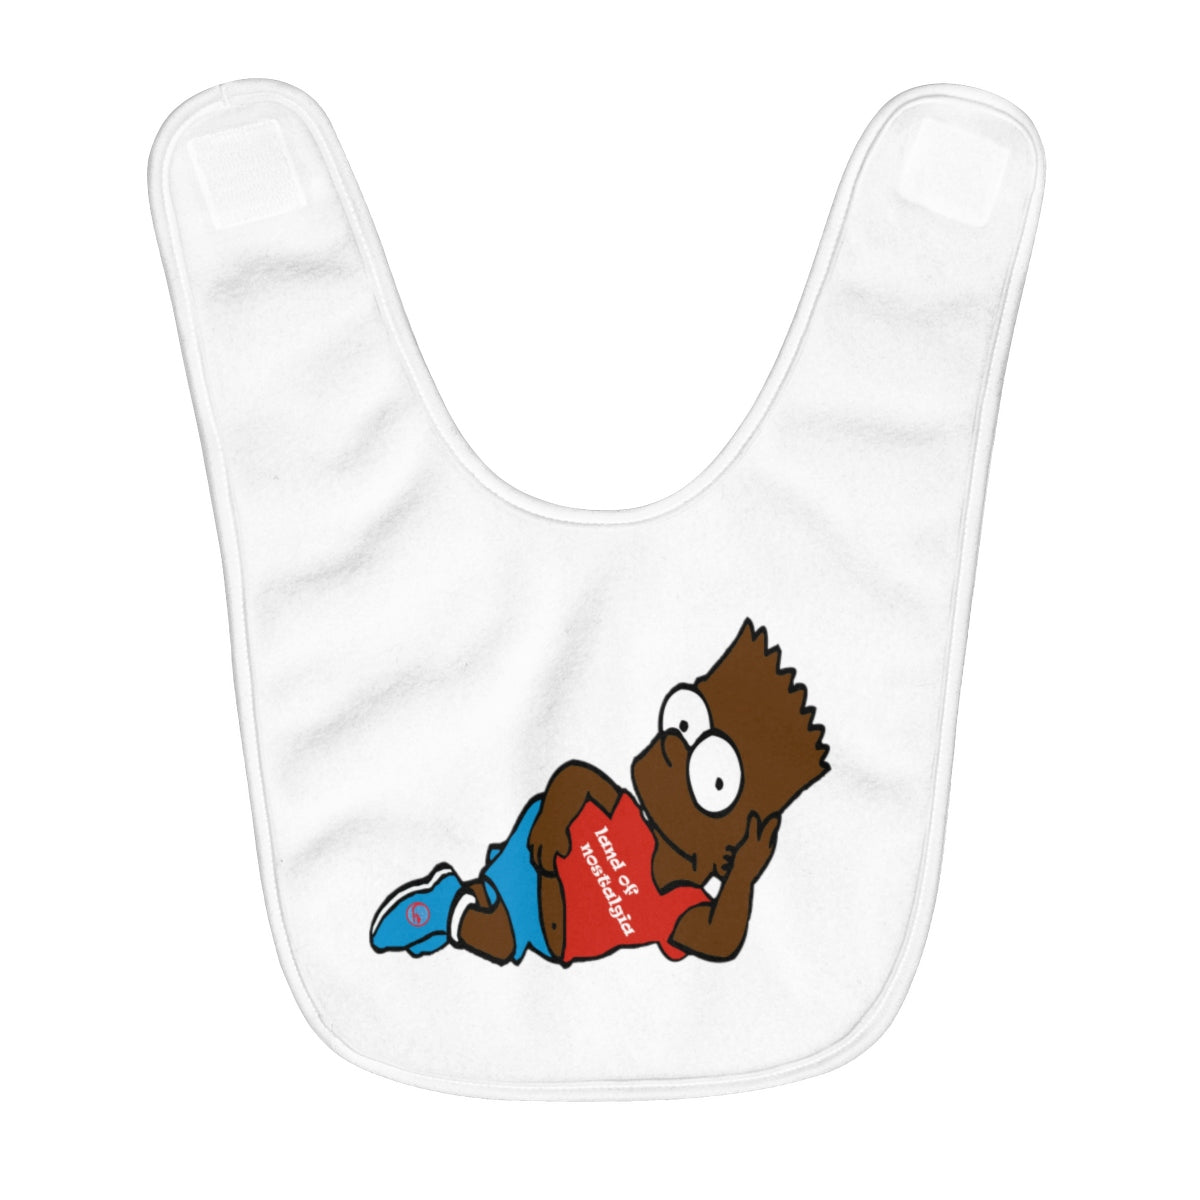 Land of Nostalgia Fleece Custom Baby Bib with 90s B(L)art Design